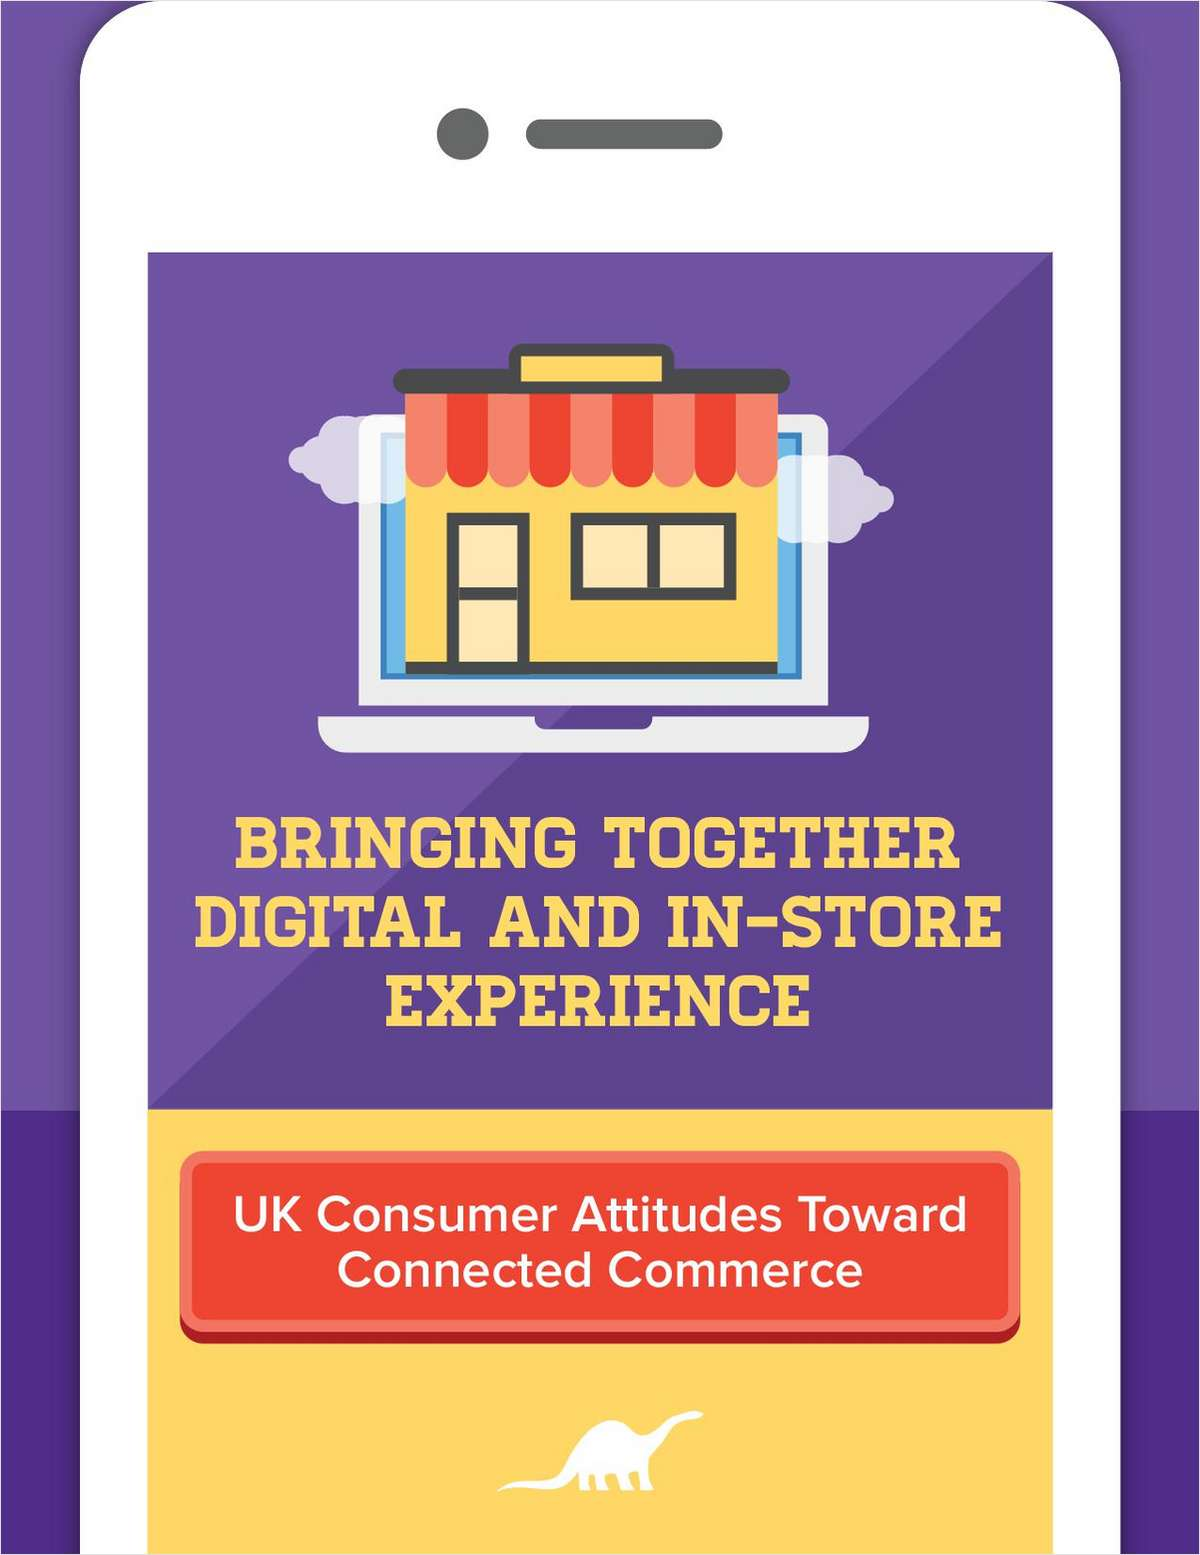 UK Consumer Attitudes Toward Connected Commerce